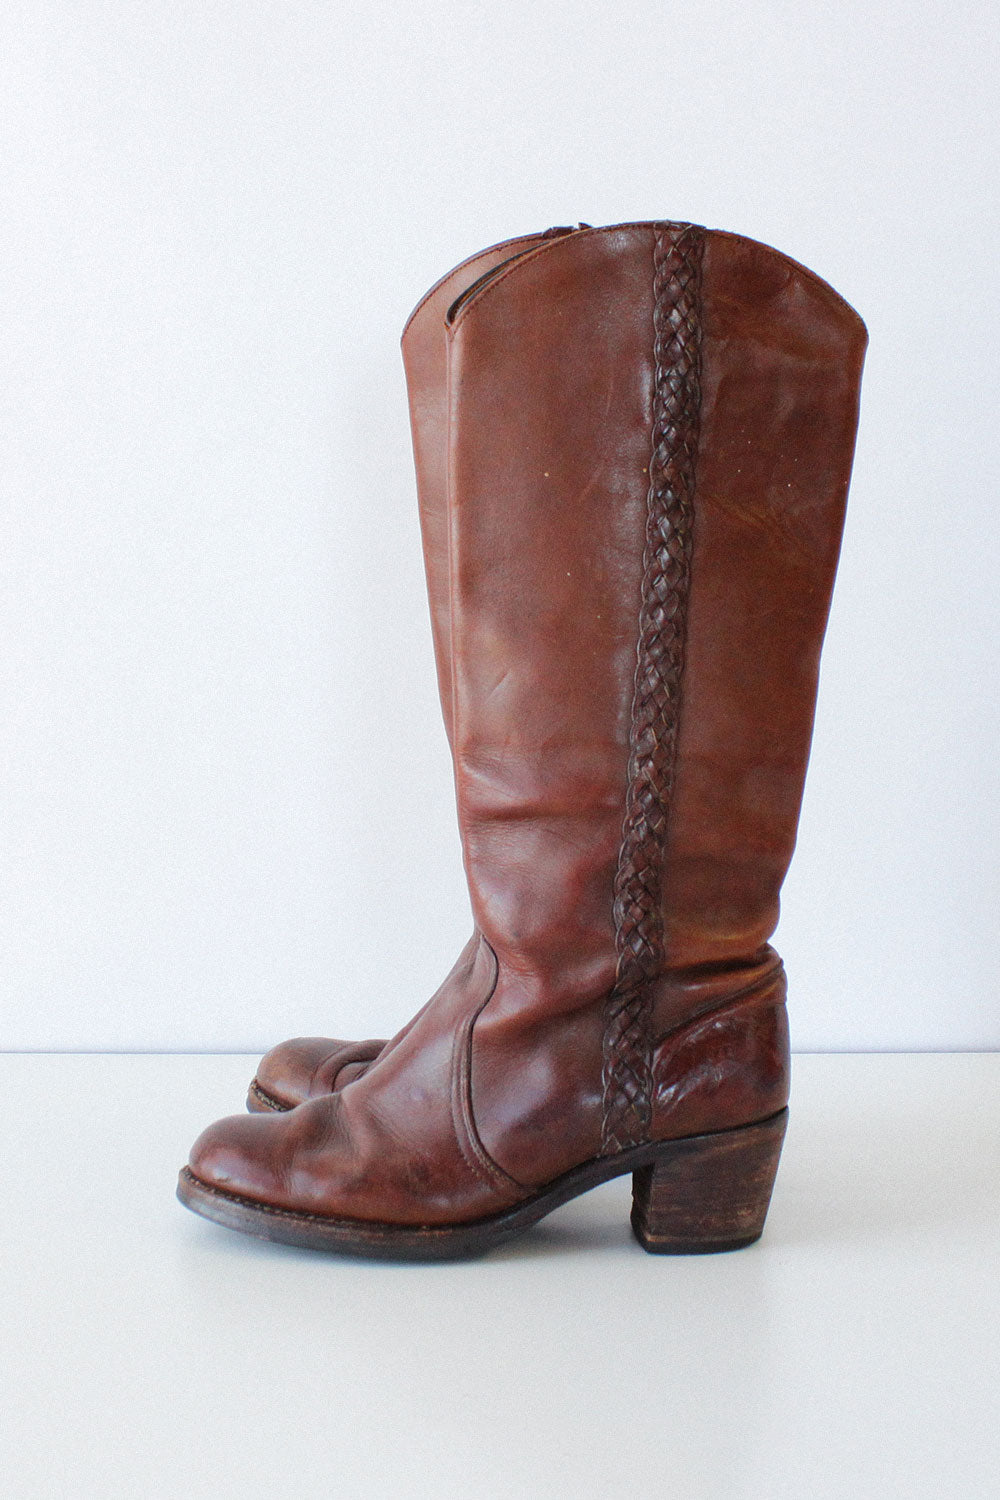 Frye Braided Campus Boots 9